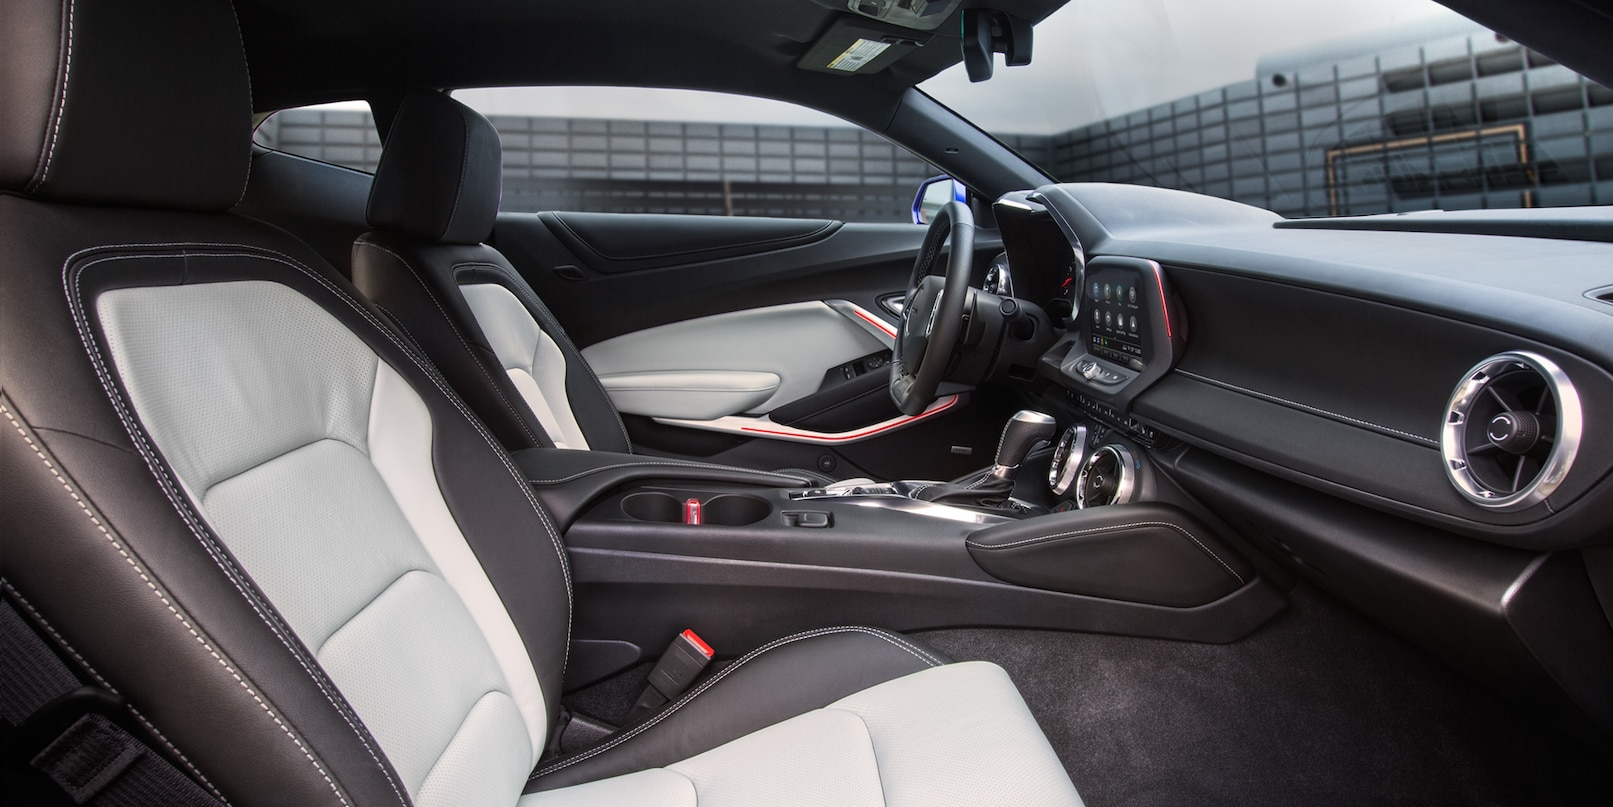 Interior of the 2019 Chevrolet Camaro